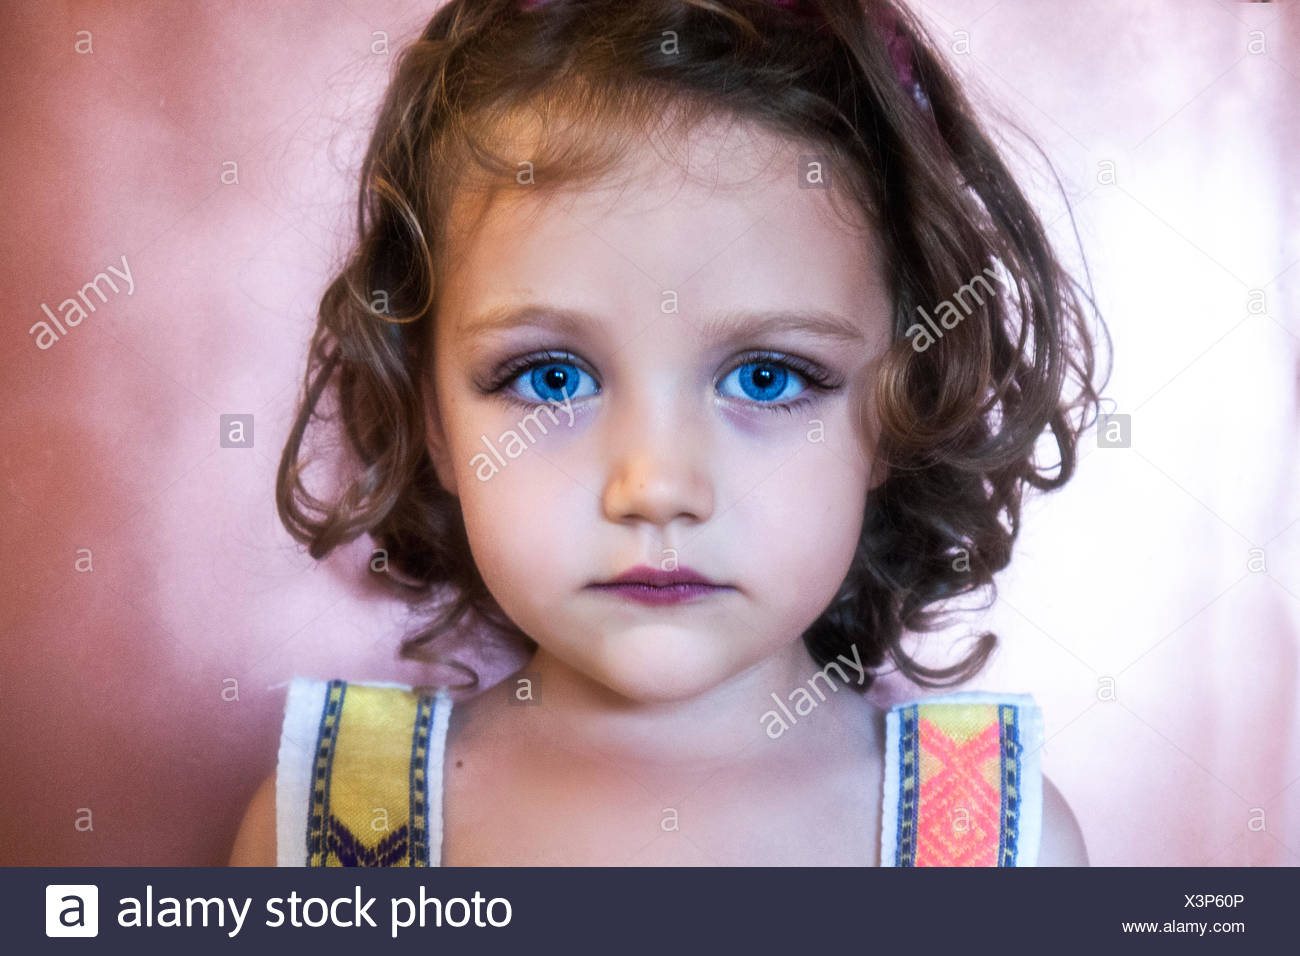 Portrait of a girl with blue eyes - Stock Image